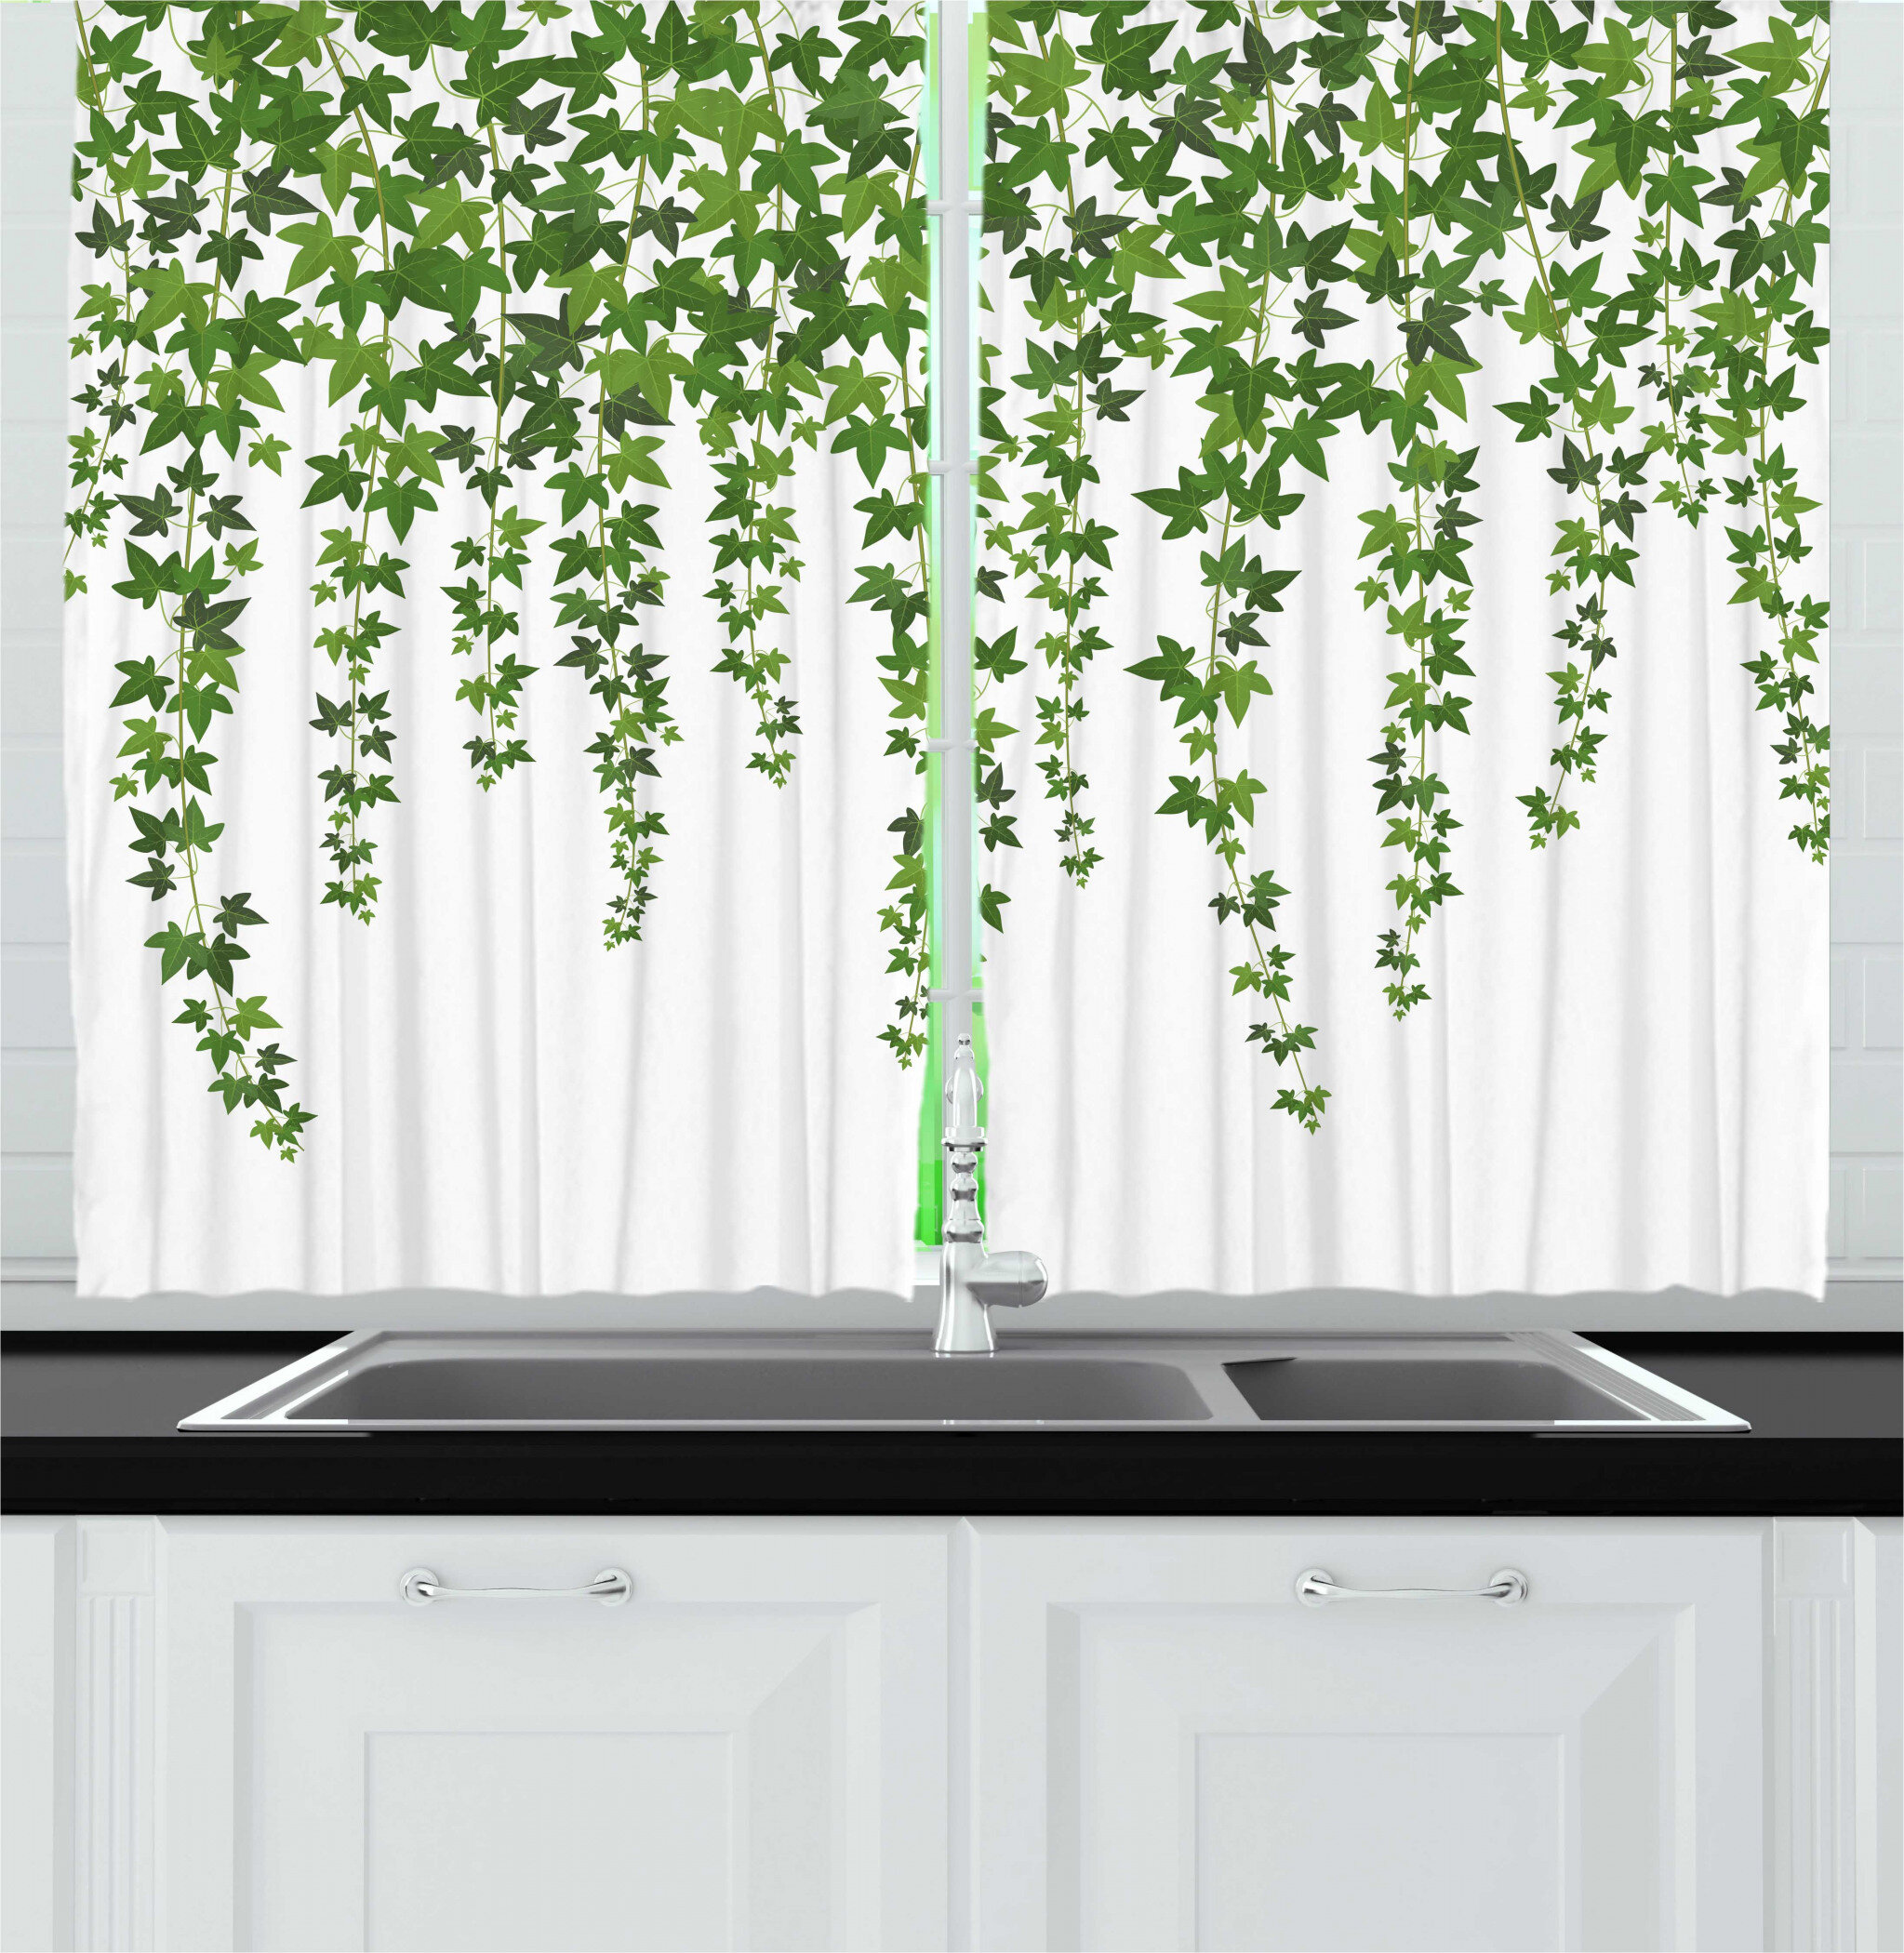 East Urban Home Vines Garden Theme Plant Grape Leaves Ivy Illustration Kitchen Curtain Wayfair